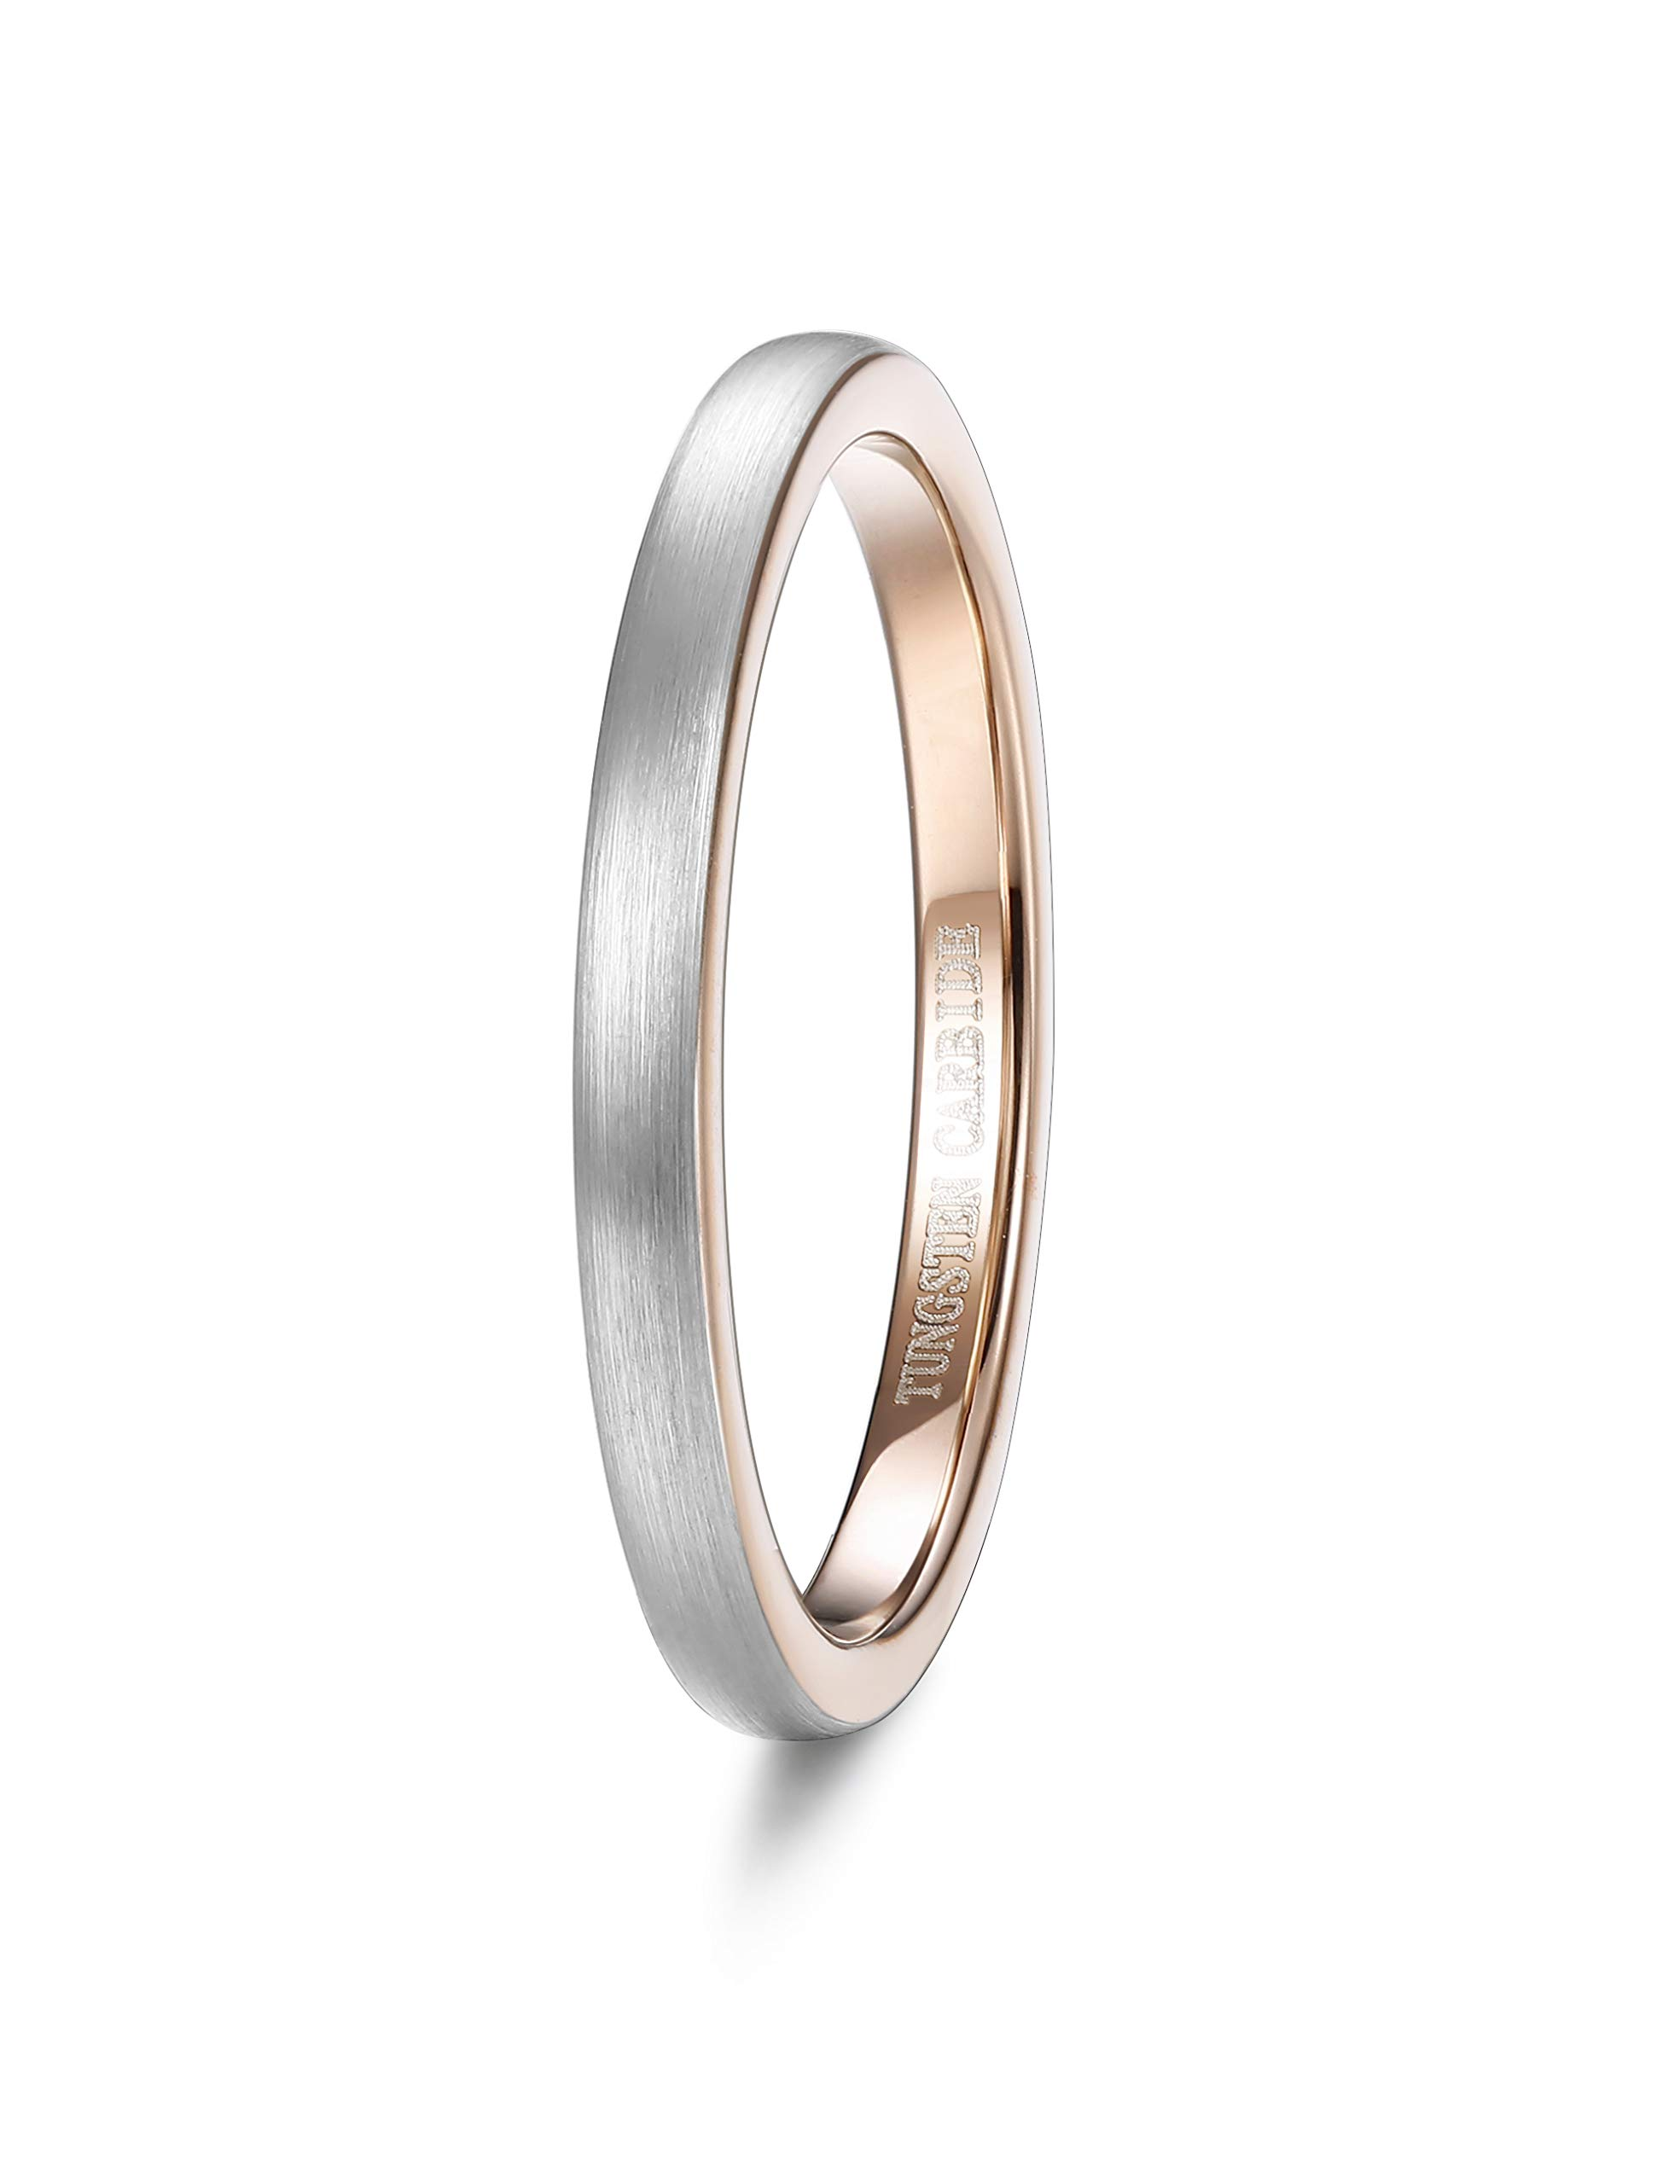 Tungary 2mm Tungsten Wedding Ring for WomenRose Gold Plated Domed Brushed Wedding Band Engagement Ring Size 7